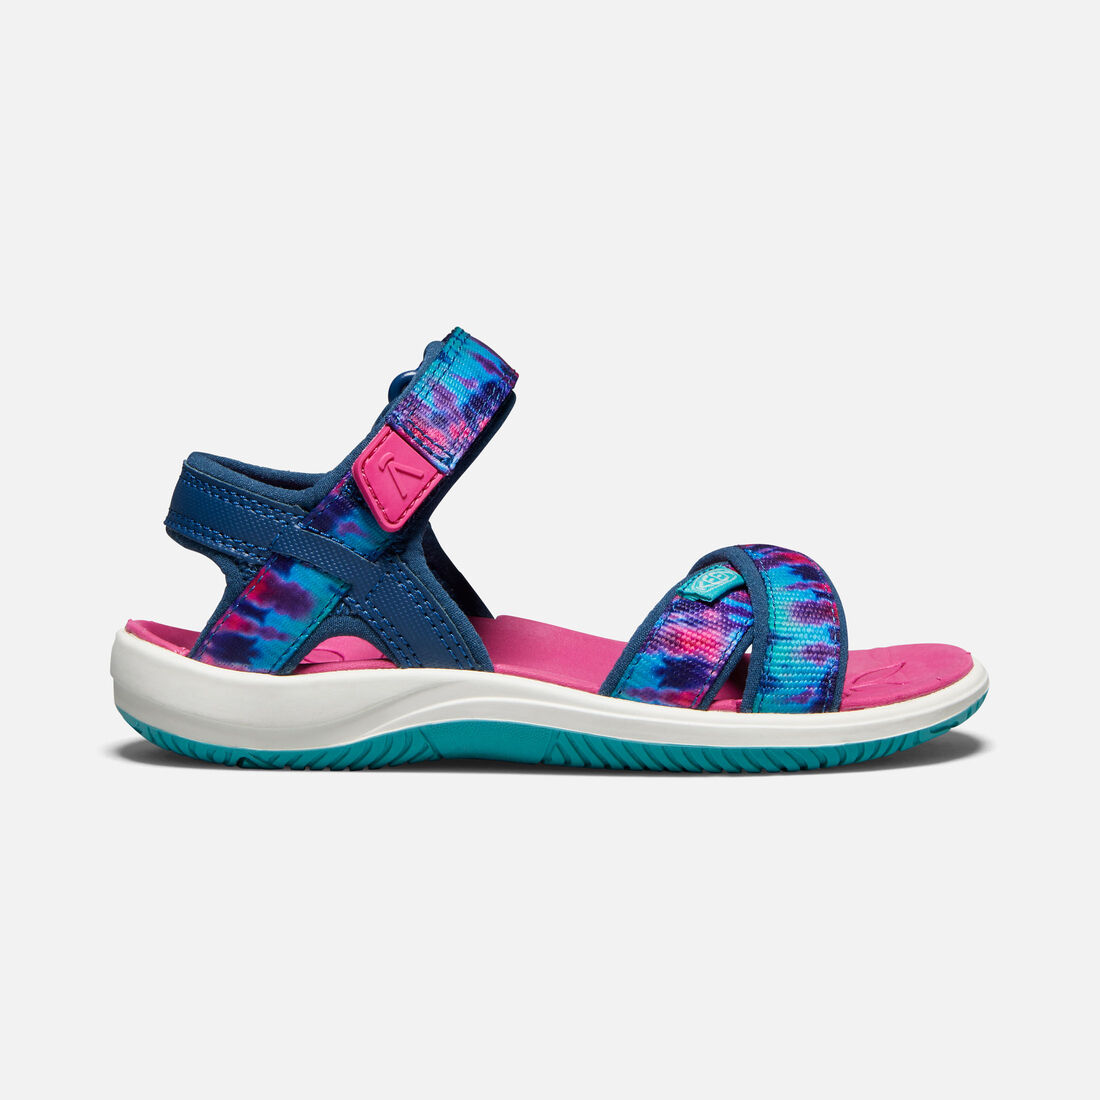 YOUNGER KIDS' PHOEBE SANDALS in NAVY TIE DYE - large view.